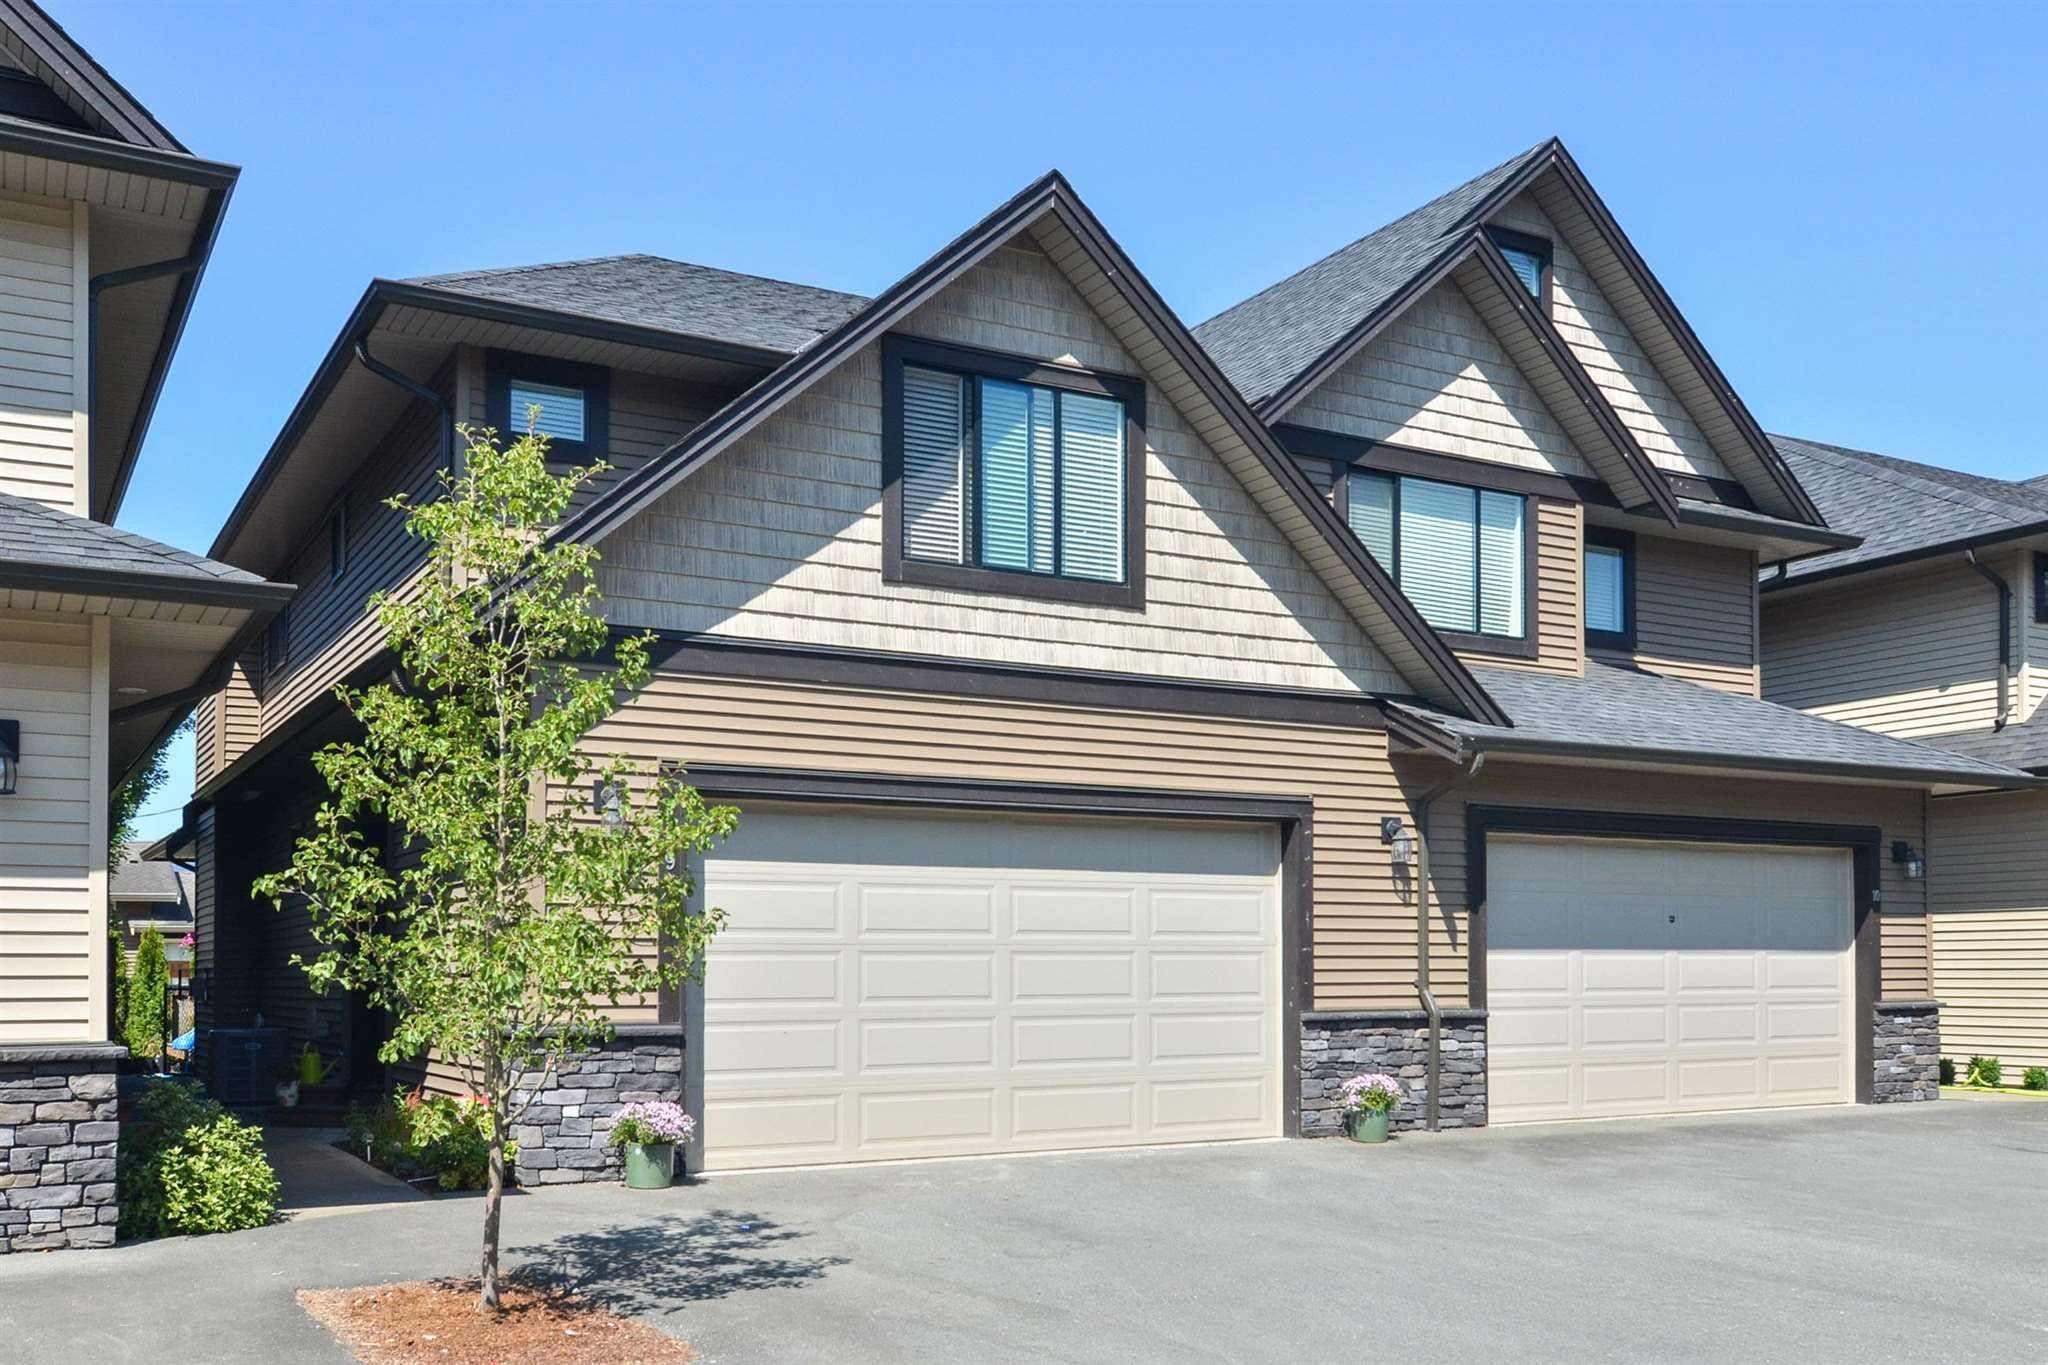 Main Photo: 9 7411 MORROW Road: Agassiz Townhouse for sale : MLS®# R2605679